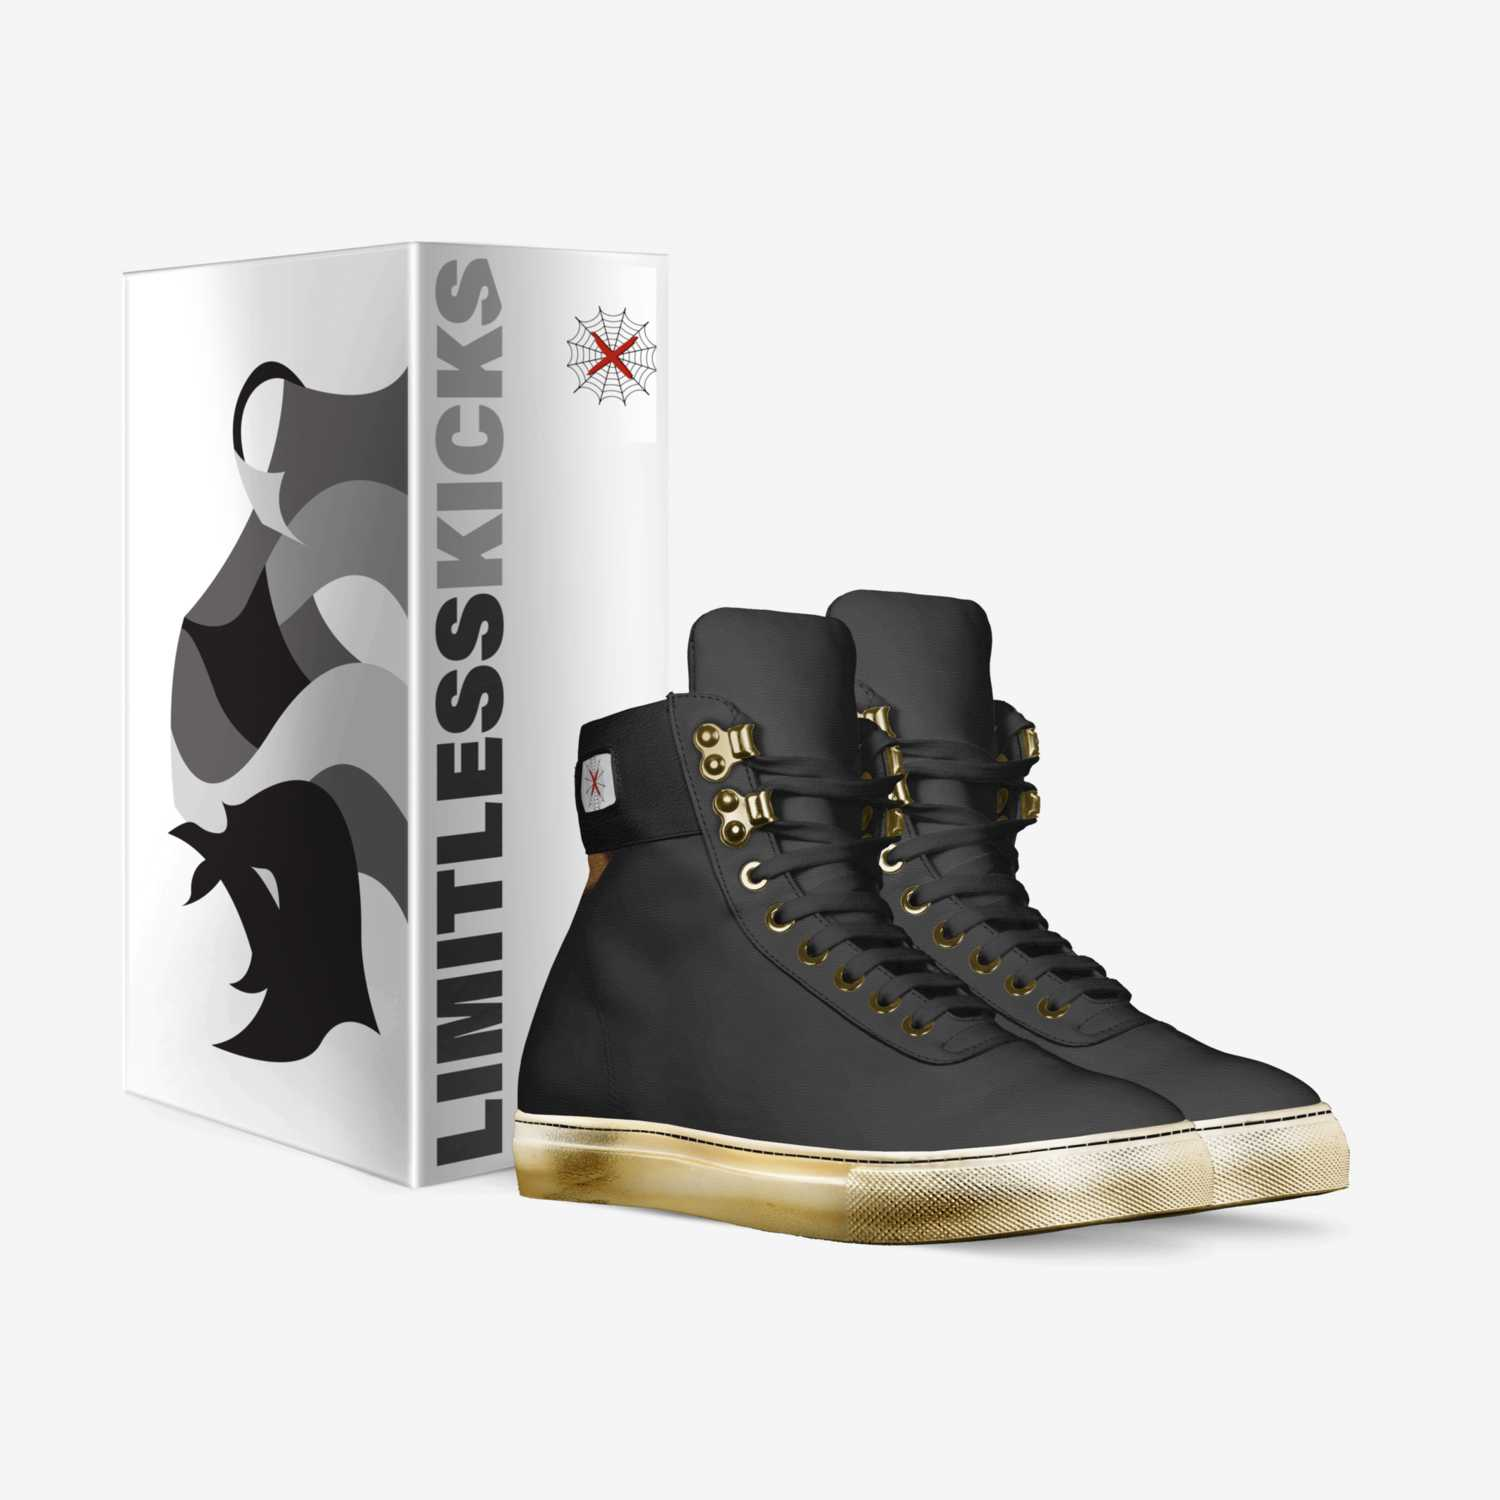 Limitless X custom made in Italy shoes by John Marchese | Box view